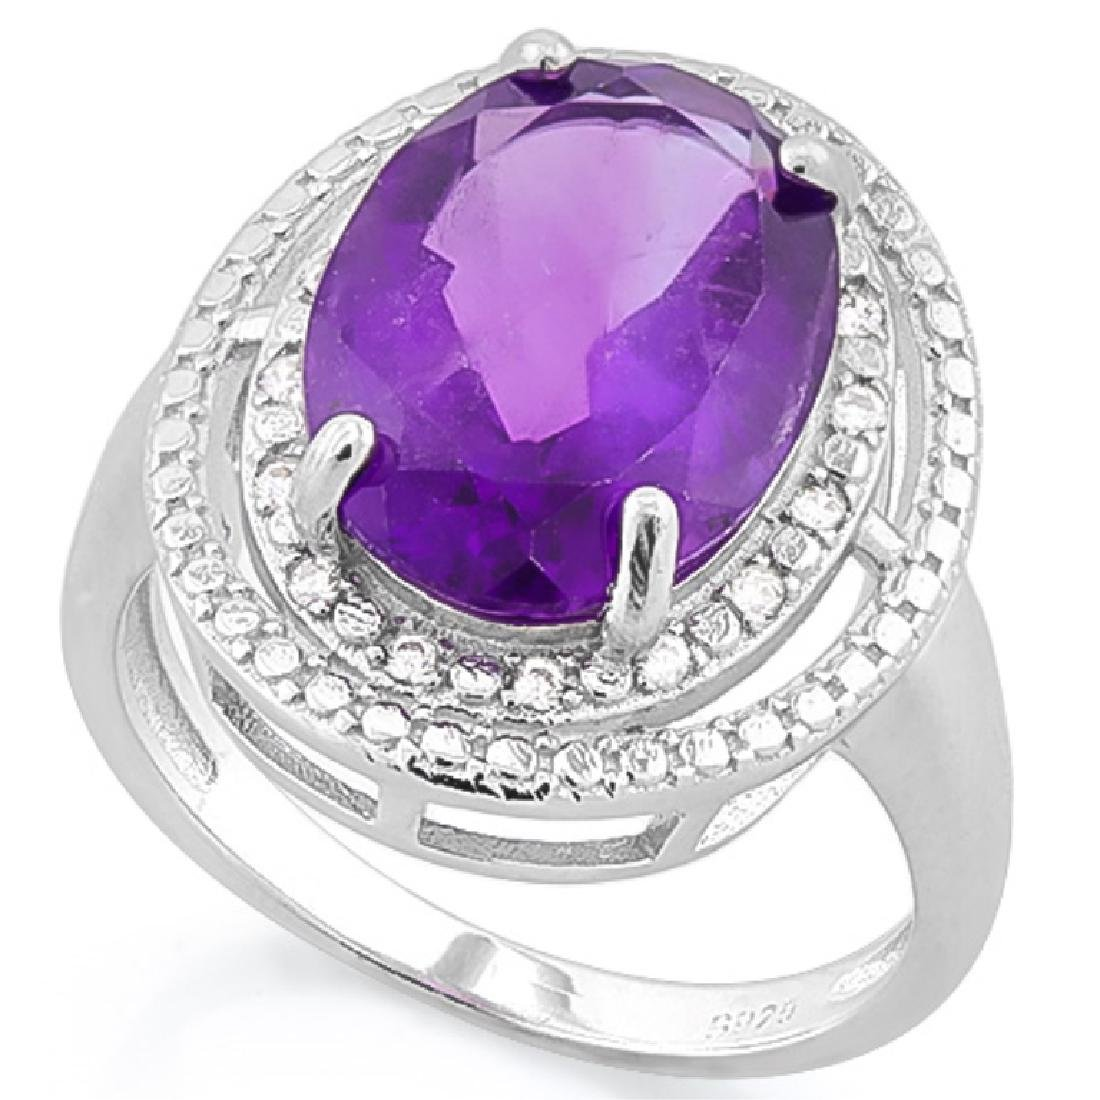 HUGE 5CT FACETED OVAL AMETHYST/DIAMOND DECO RING